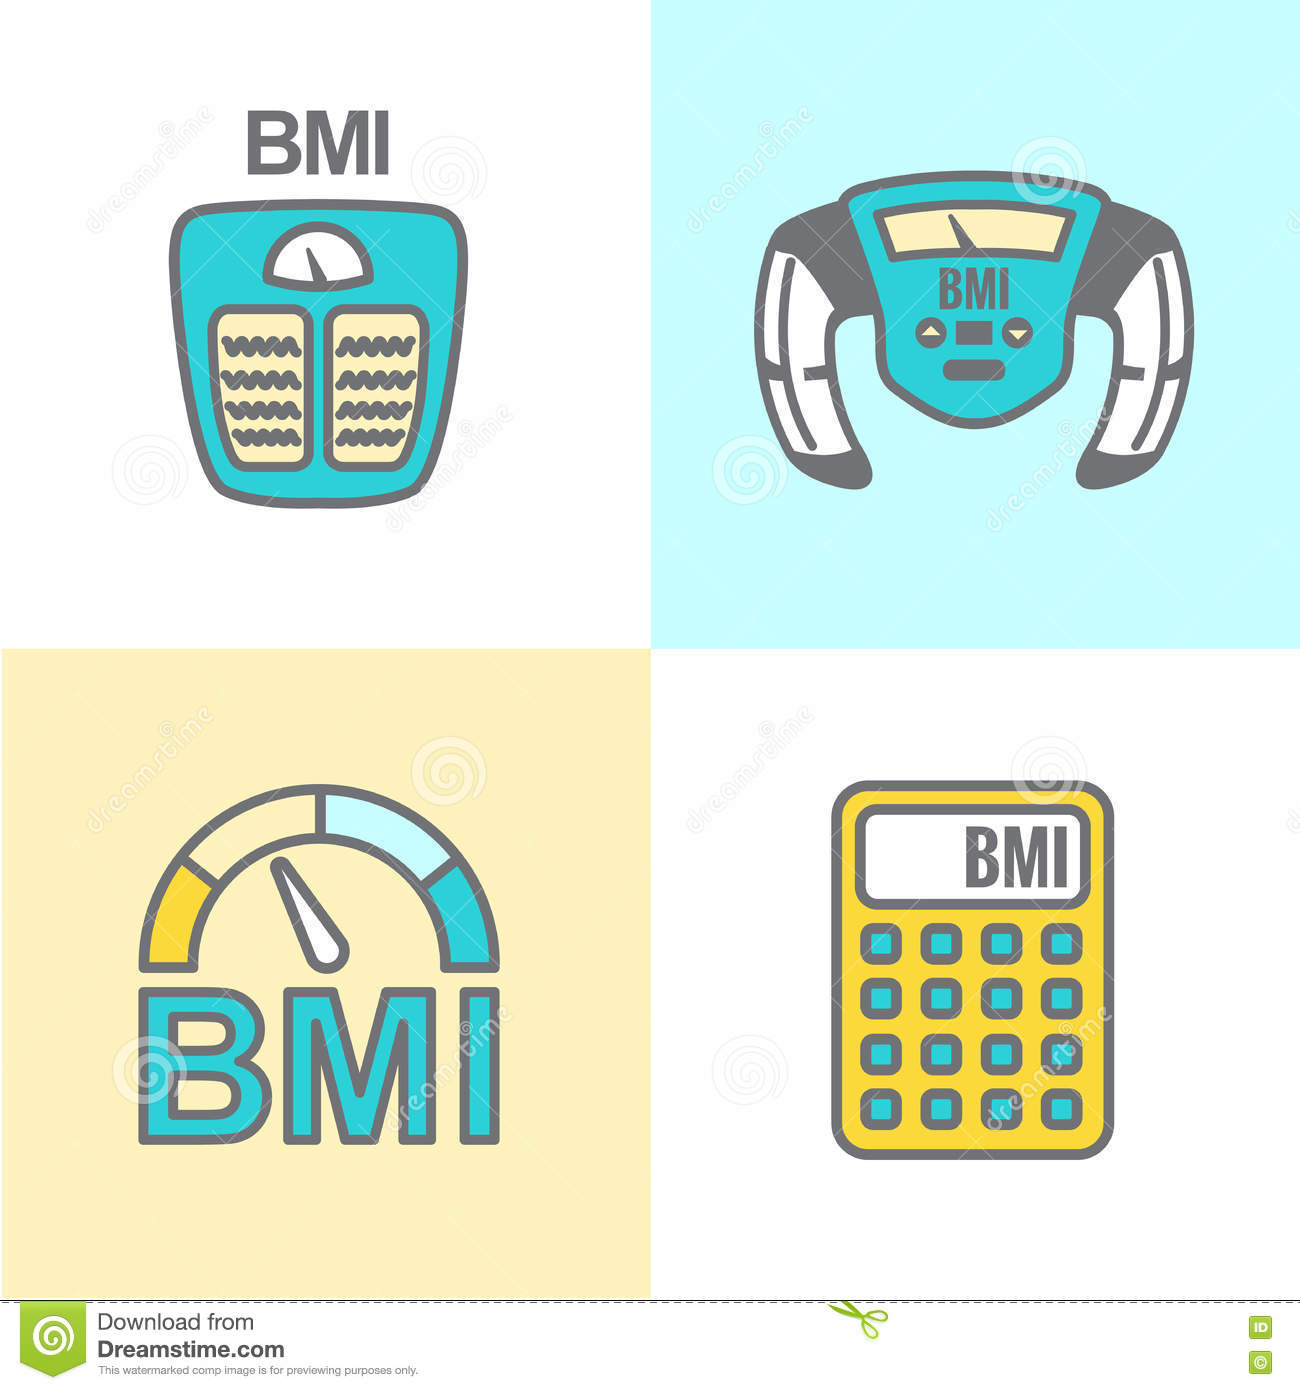 BMI or Body Mass Index Icons